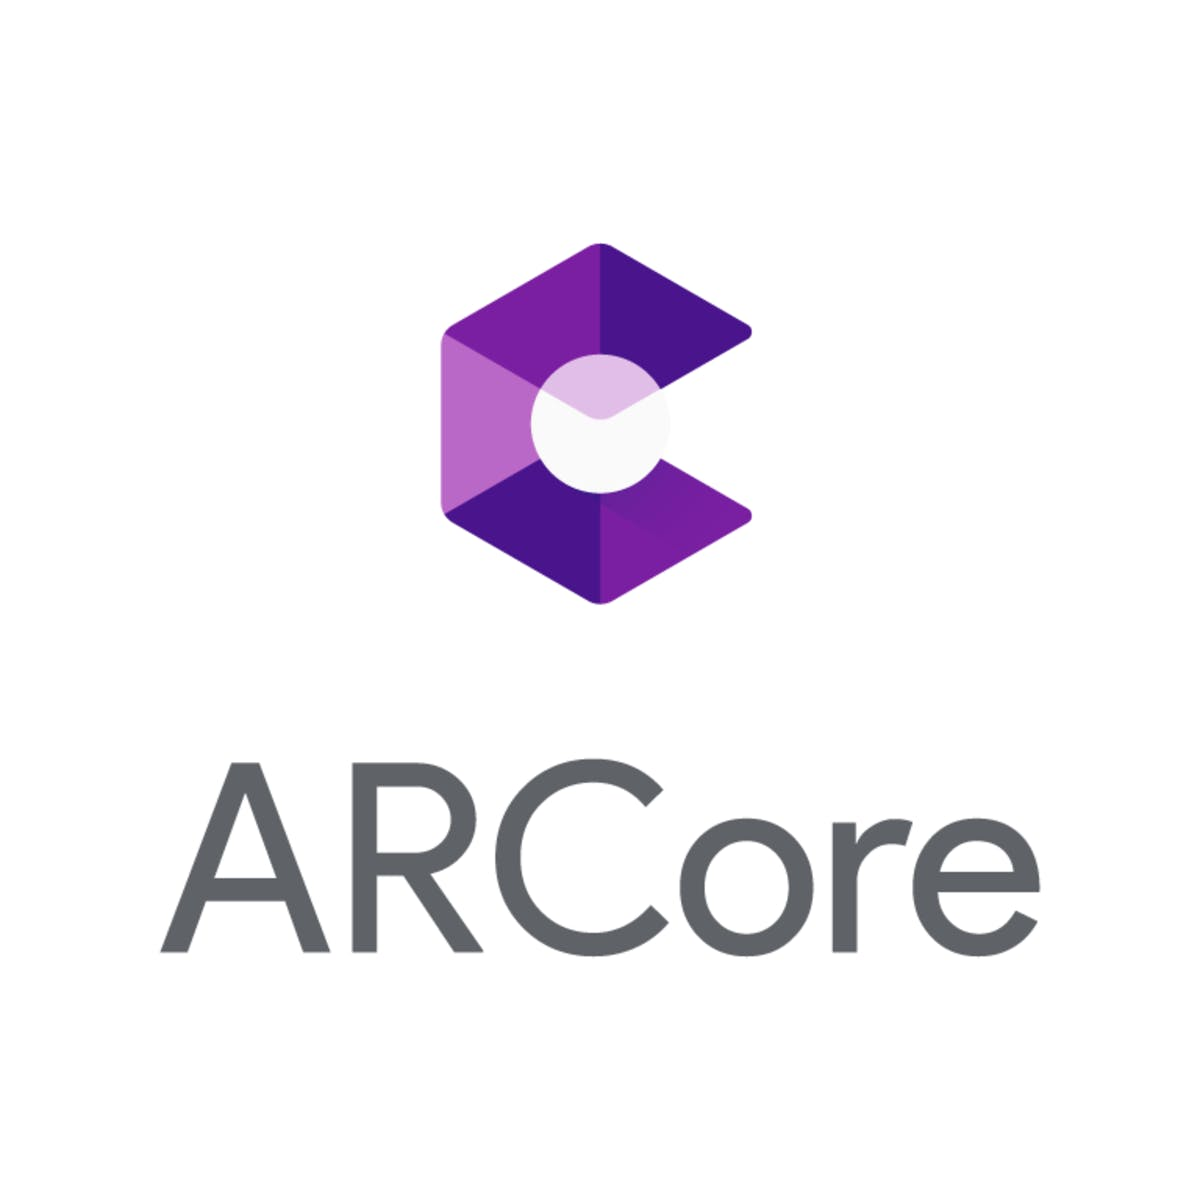 Introduction to Augmented Reality and ARCore